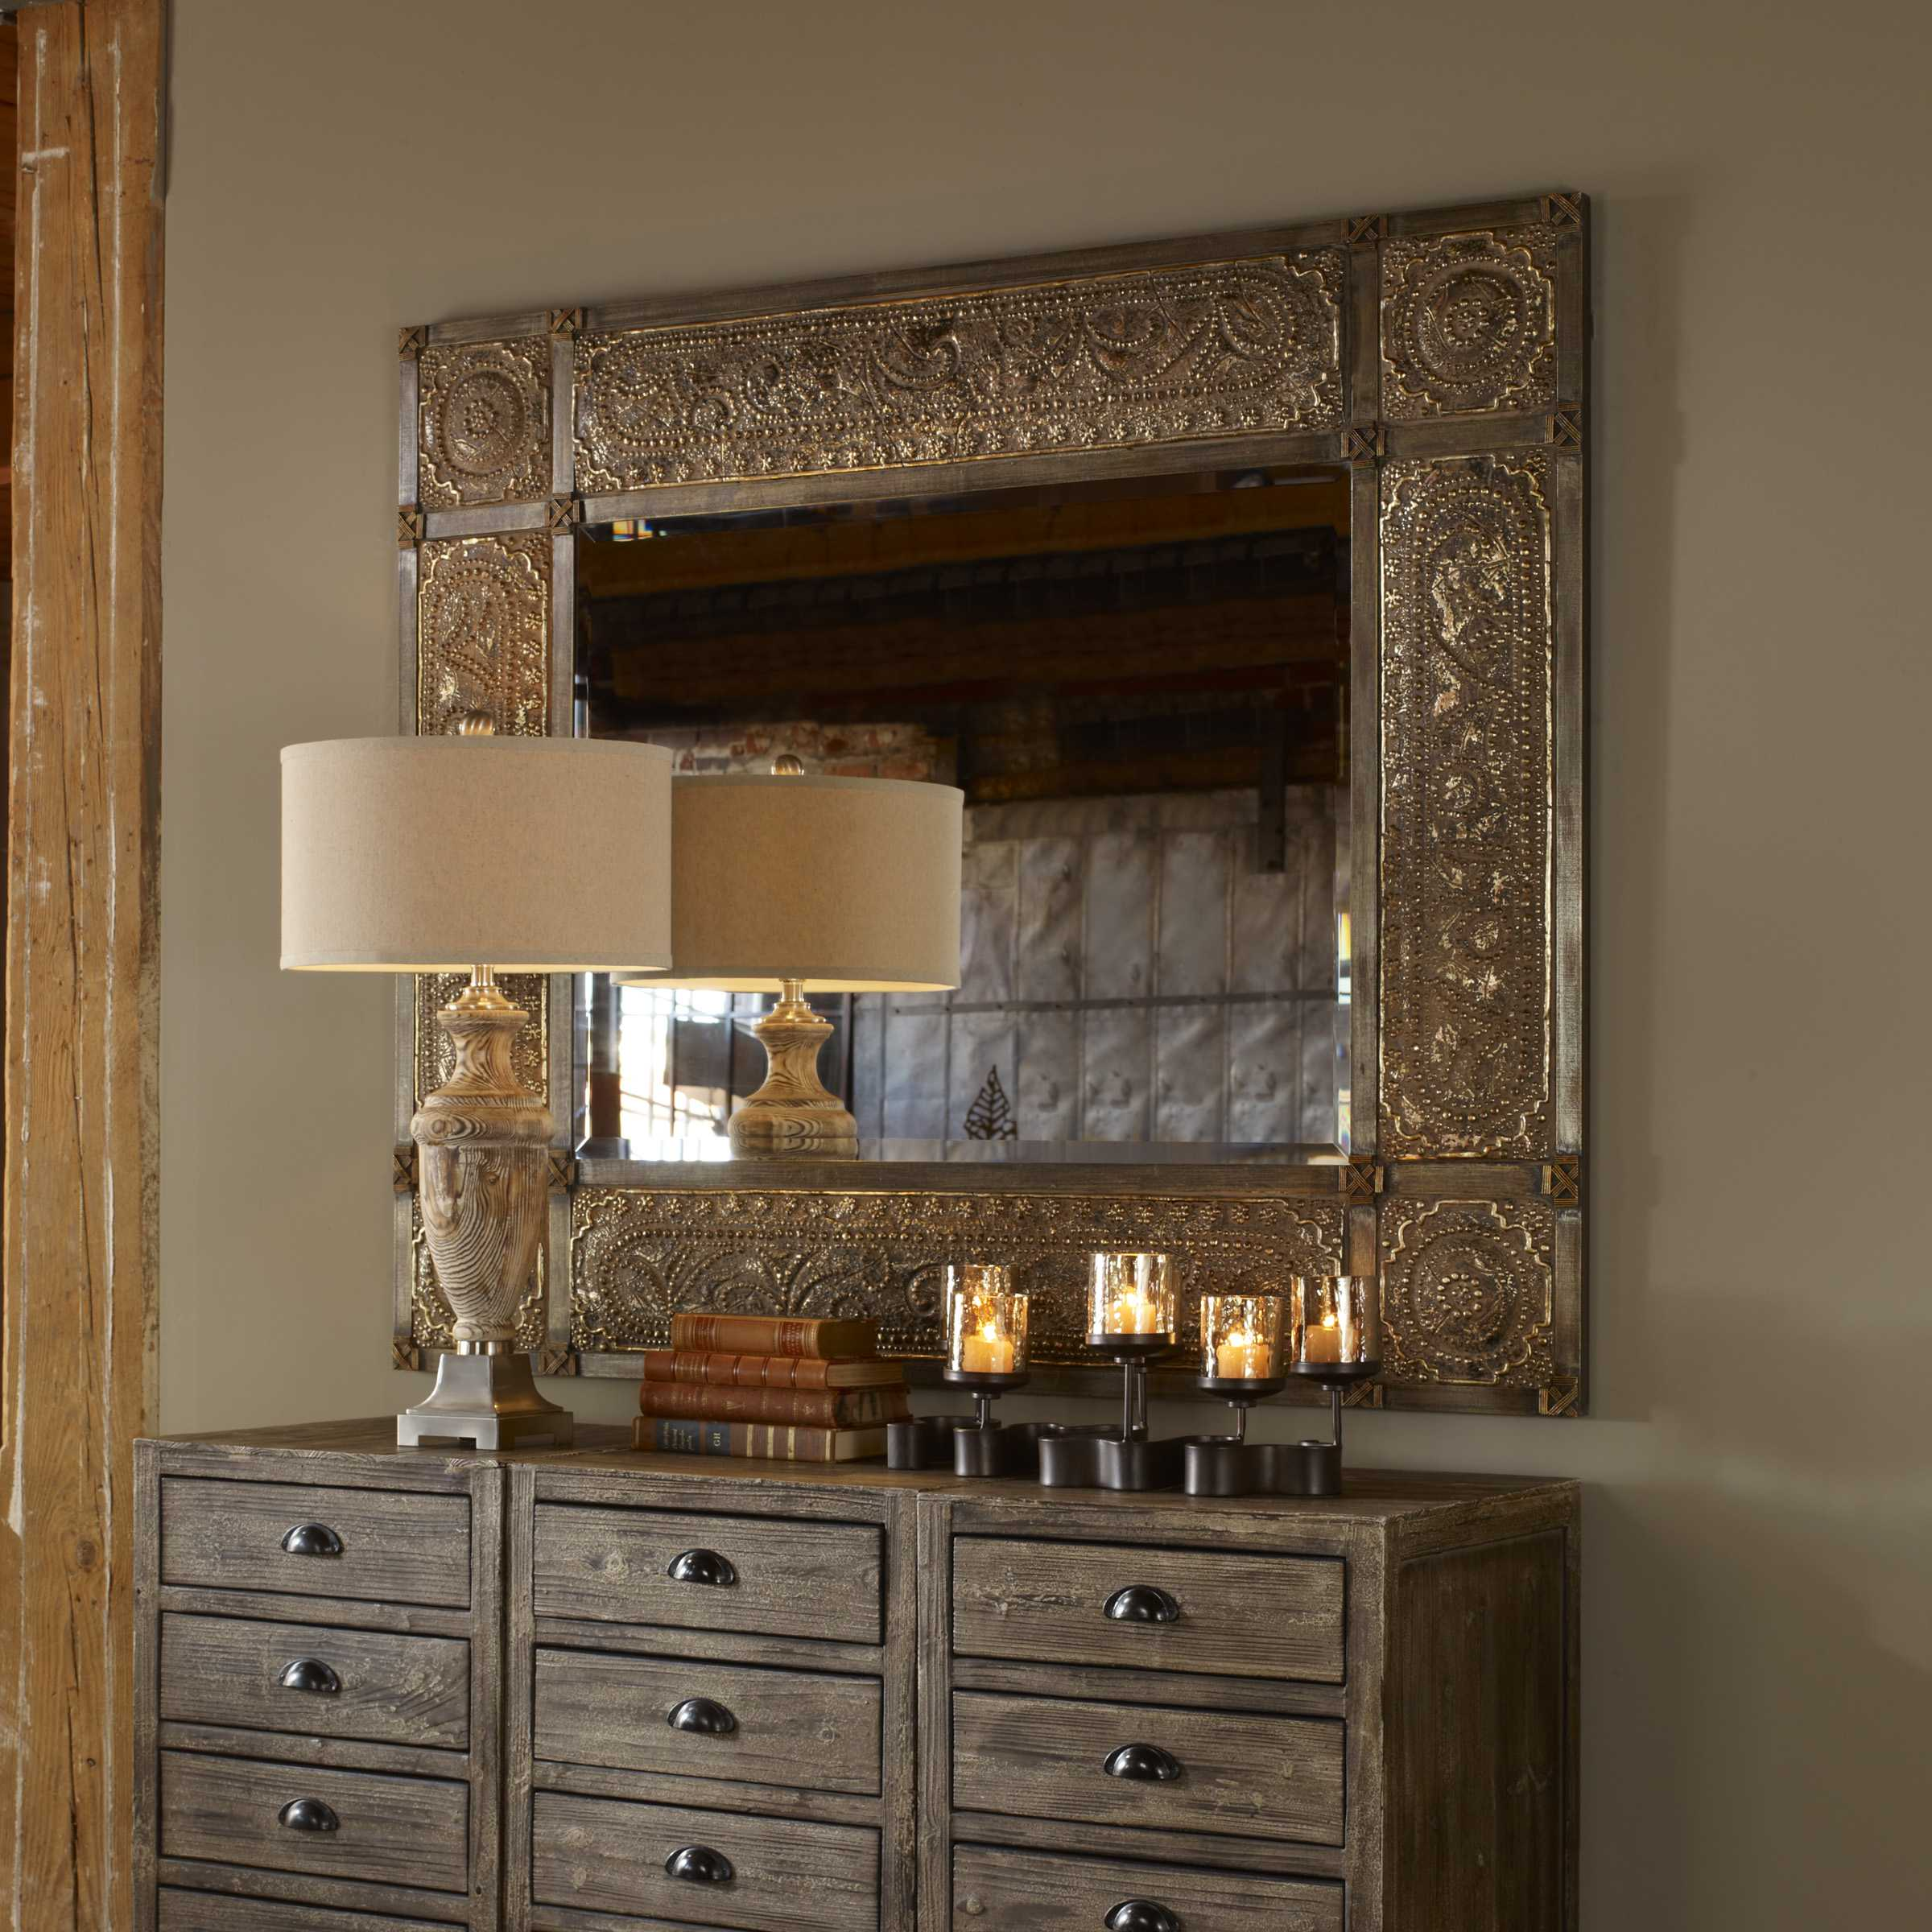 Uttermost harvest serenity 50 x 60 champagne gold wall for Miroir 50 x 60